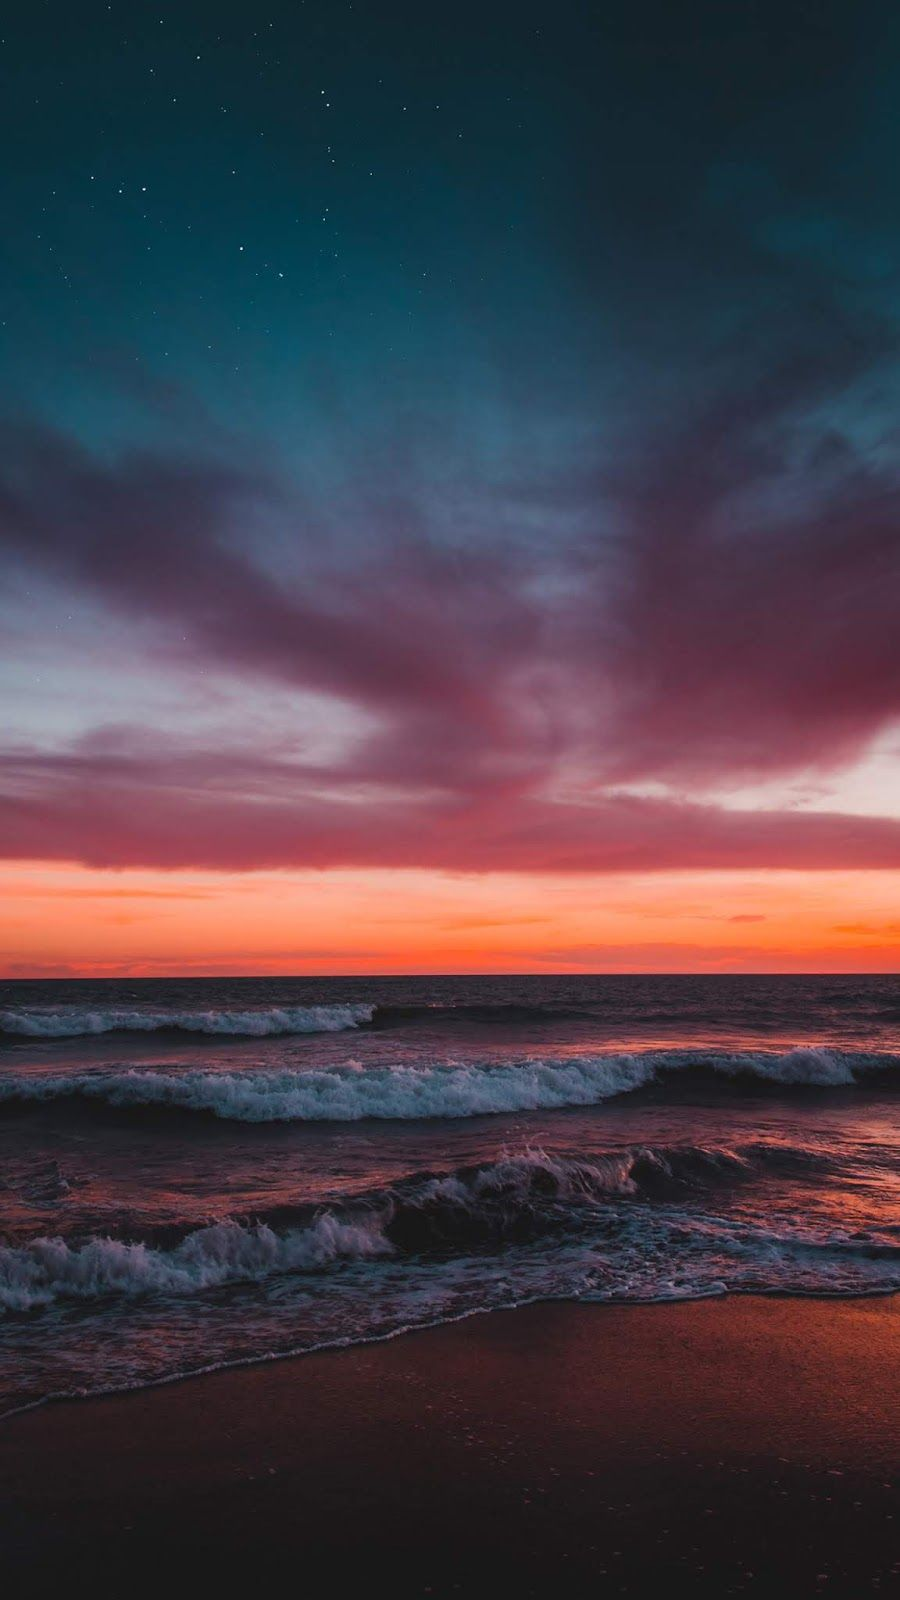 Sunset On The Beach Wallpaper Iphone Android Background Followme Sunset Wallpaper Beach Wallpaper Beach Wallpaper Iphone